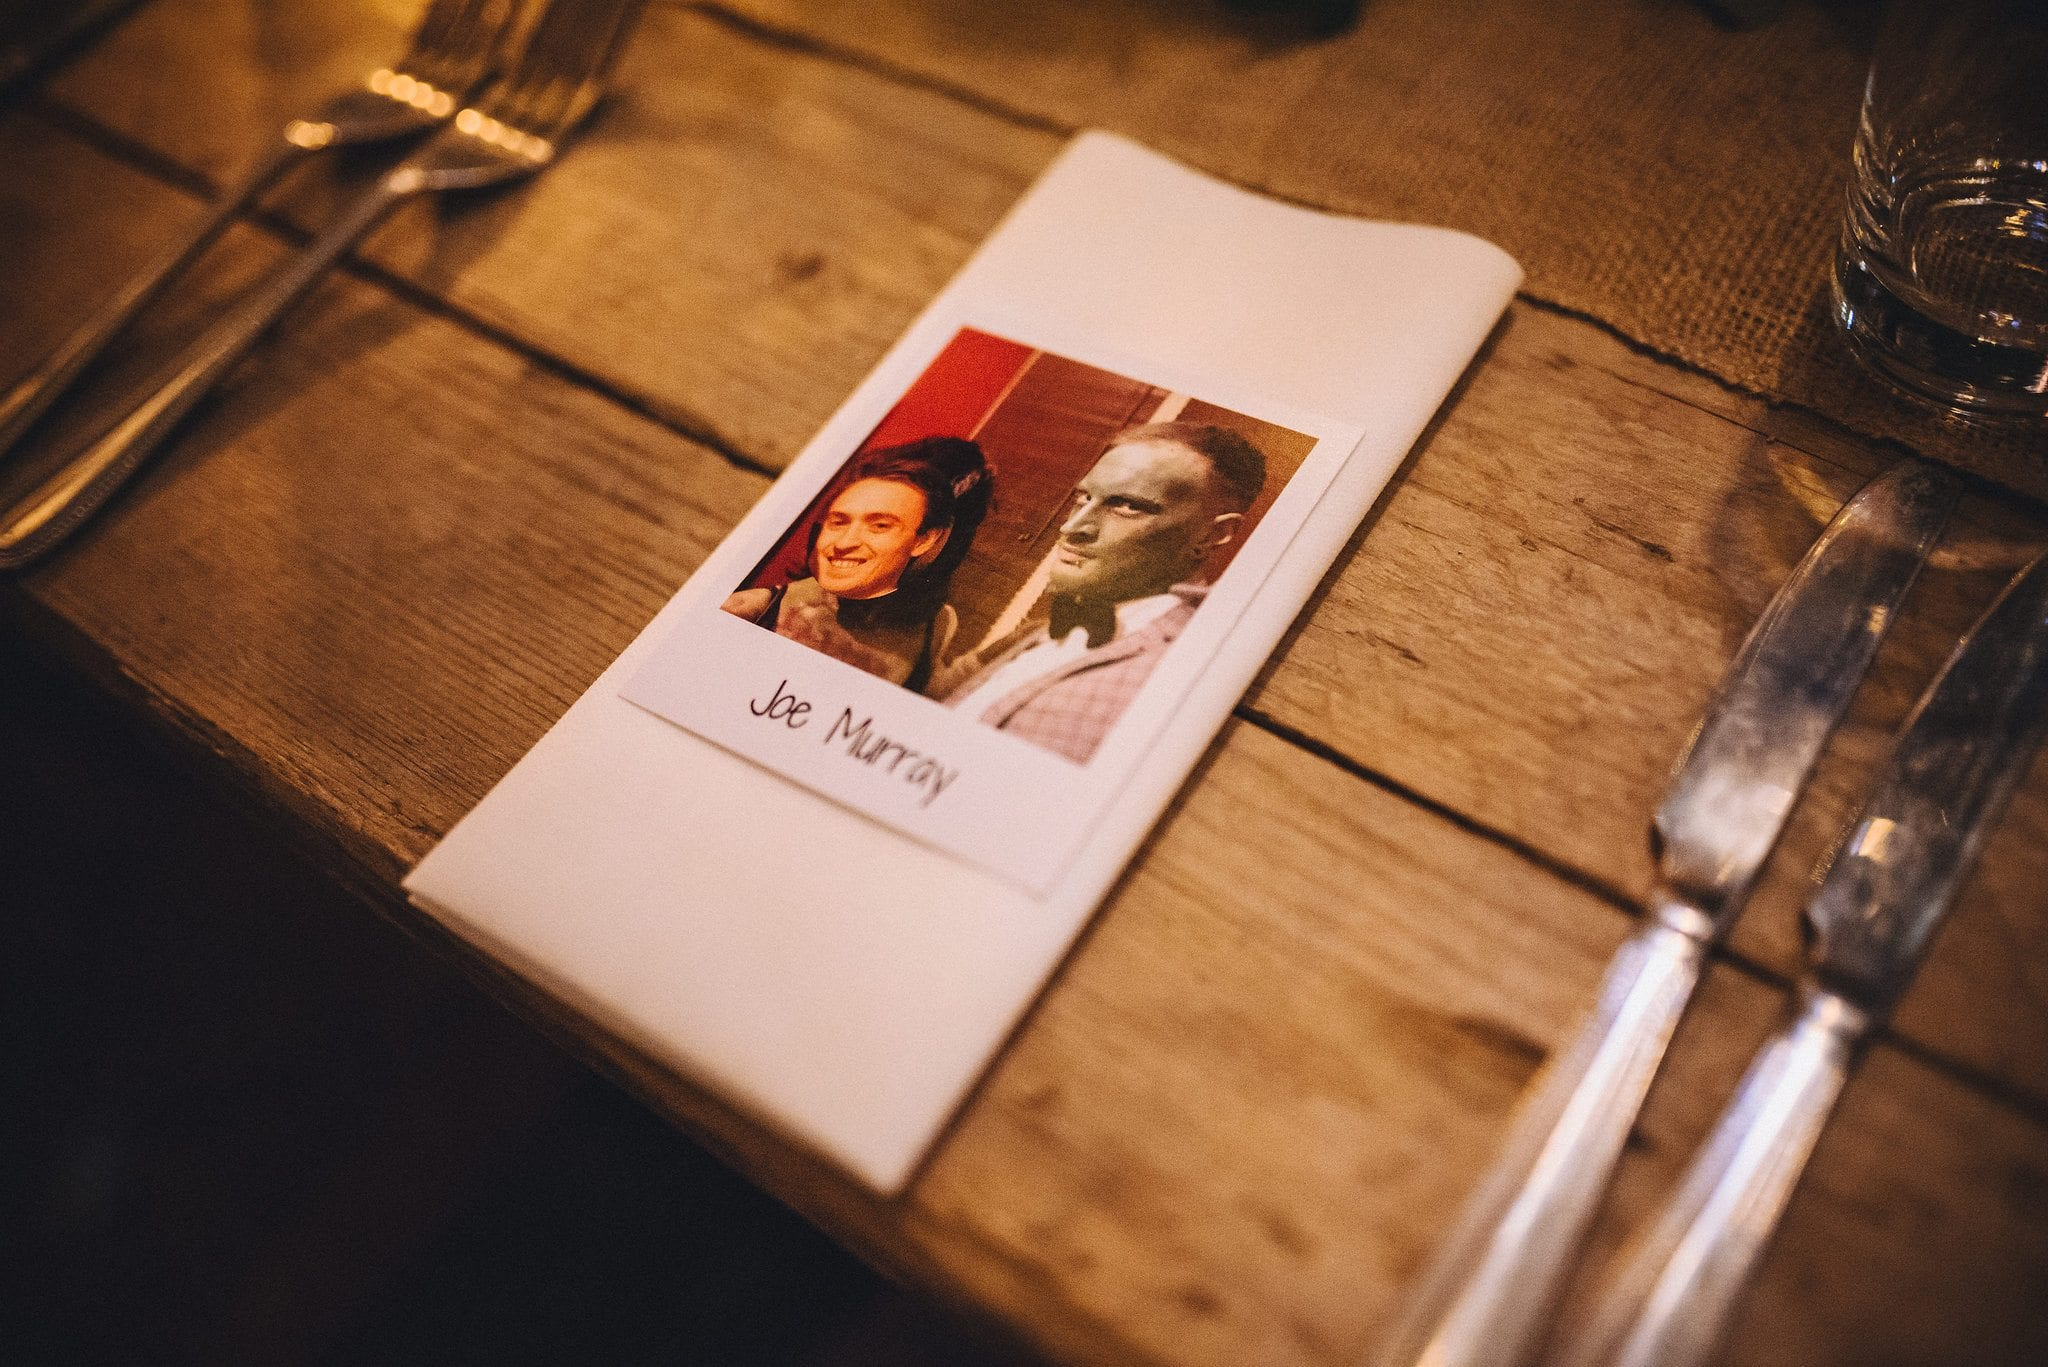 Hilarious photoshopped place cards